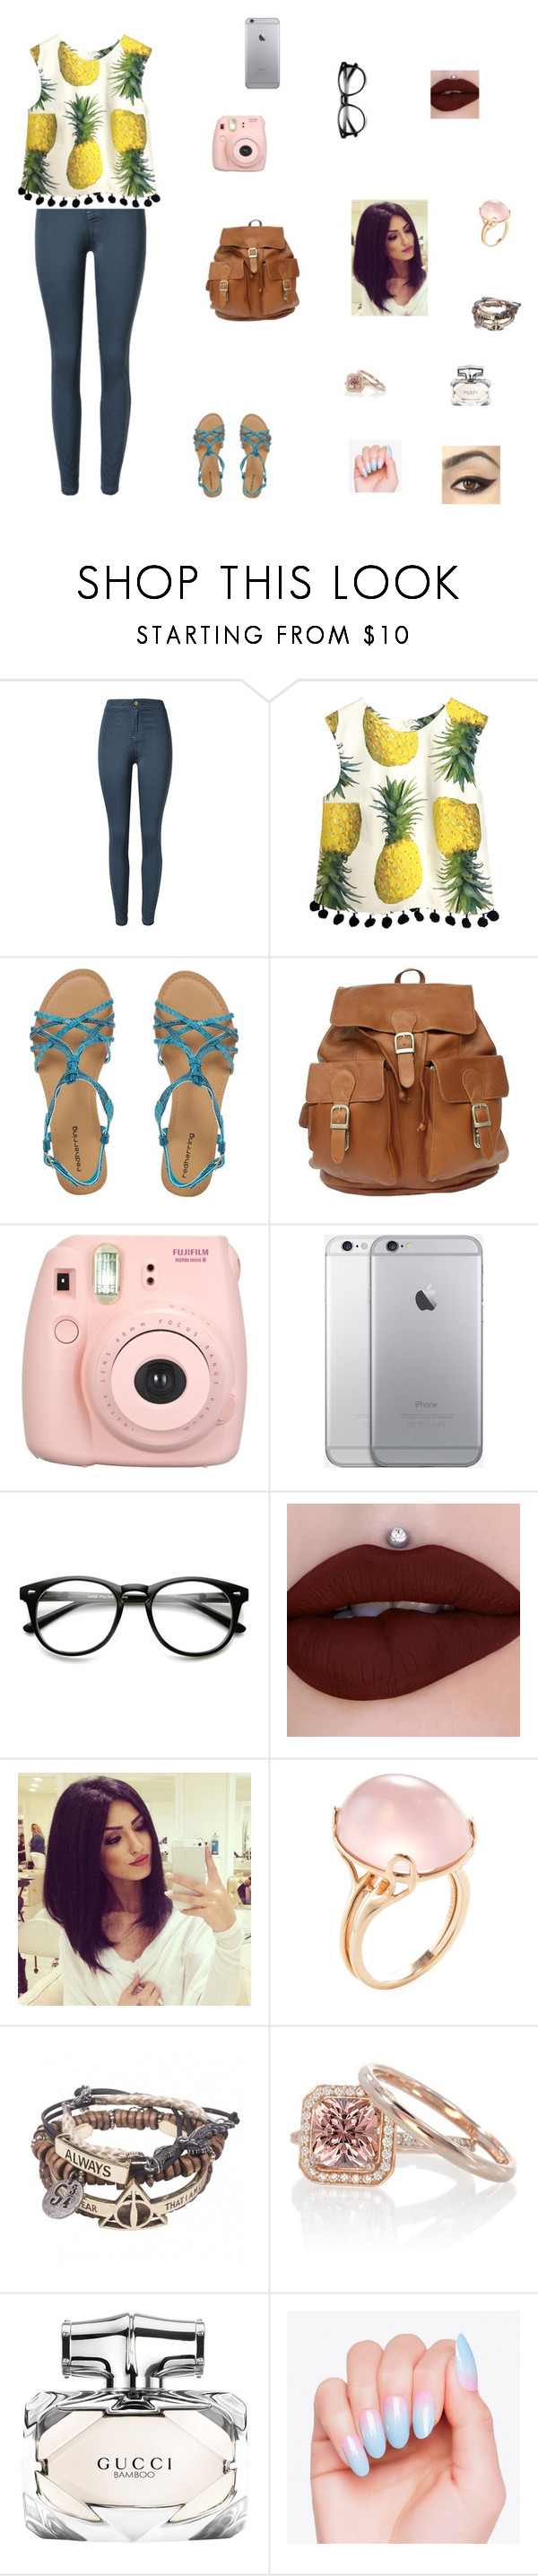 """""""Untitled"""" by sass-queen-159 ❤ liked on Polyvore featuring Red Herring, Fujifilm, Goshwara and Gucci"""